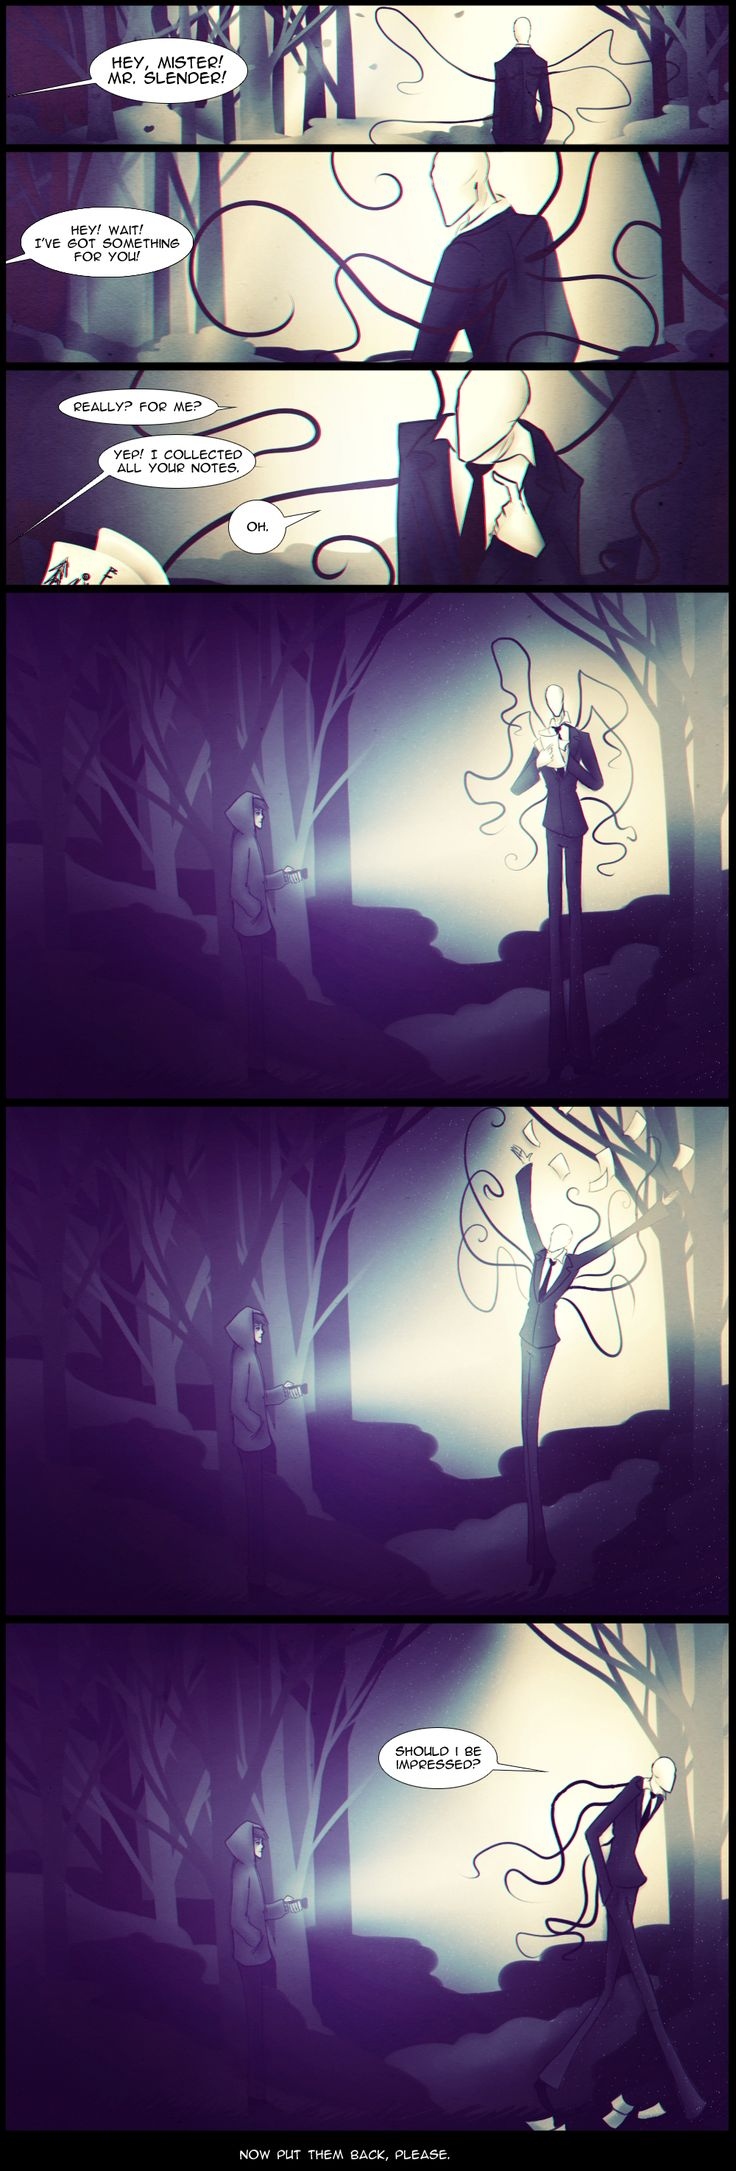 Slender : The Game. Ending? by Paradoxoid